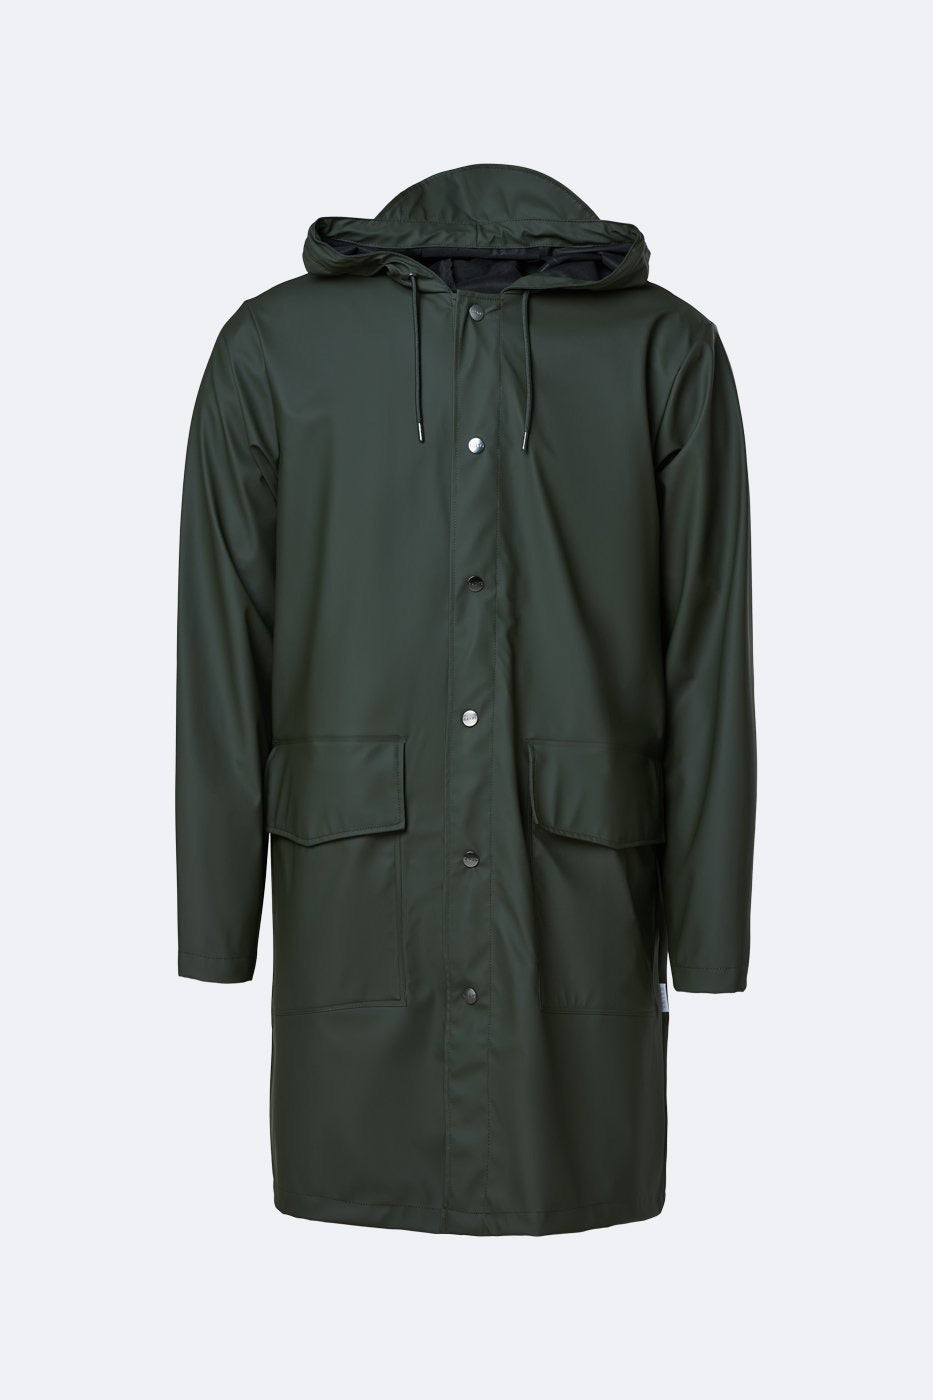 Rains - Hooded Coat - Green - Unisexe